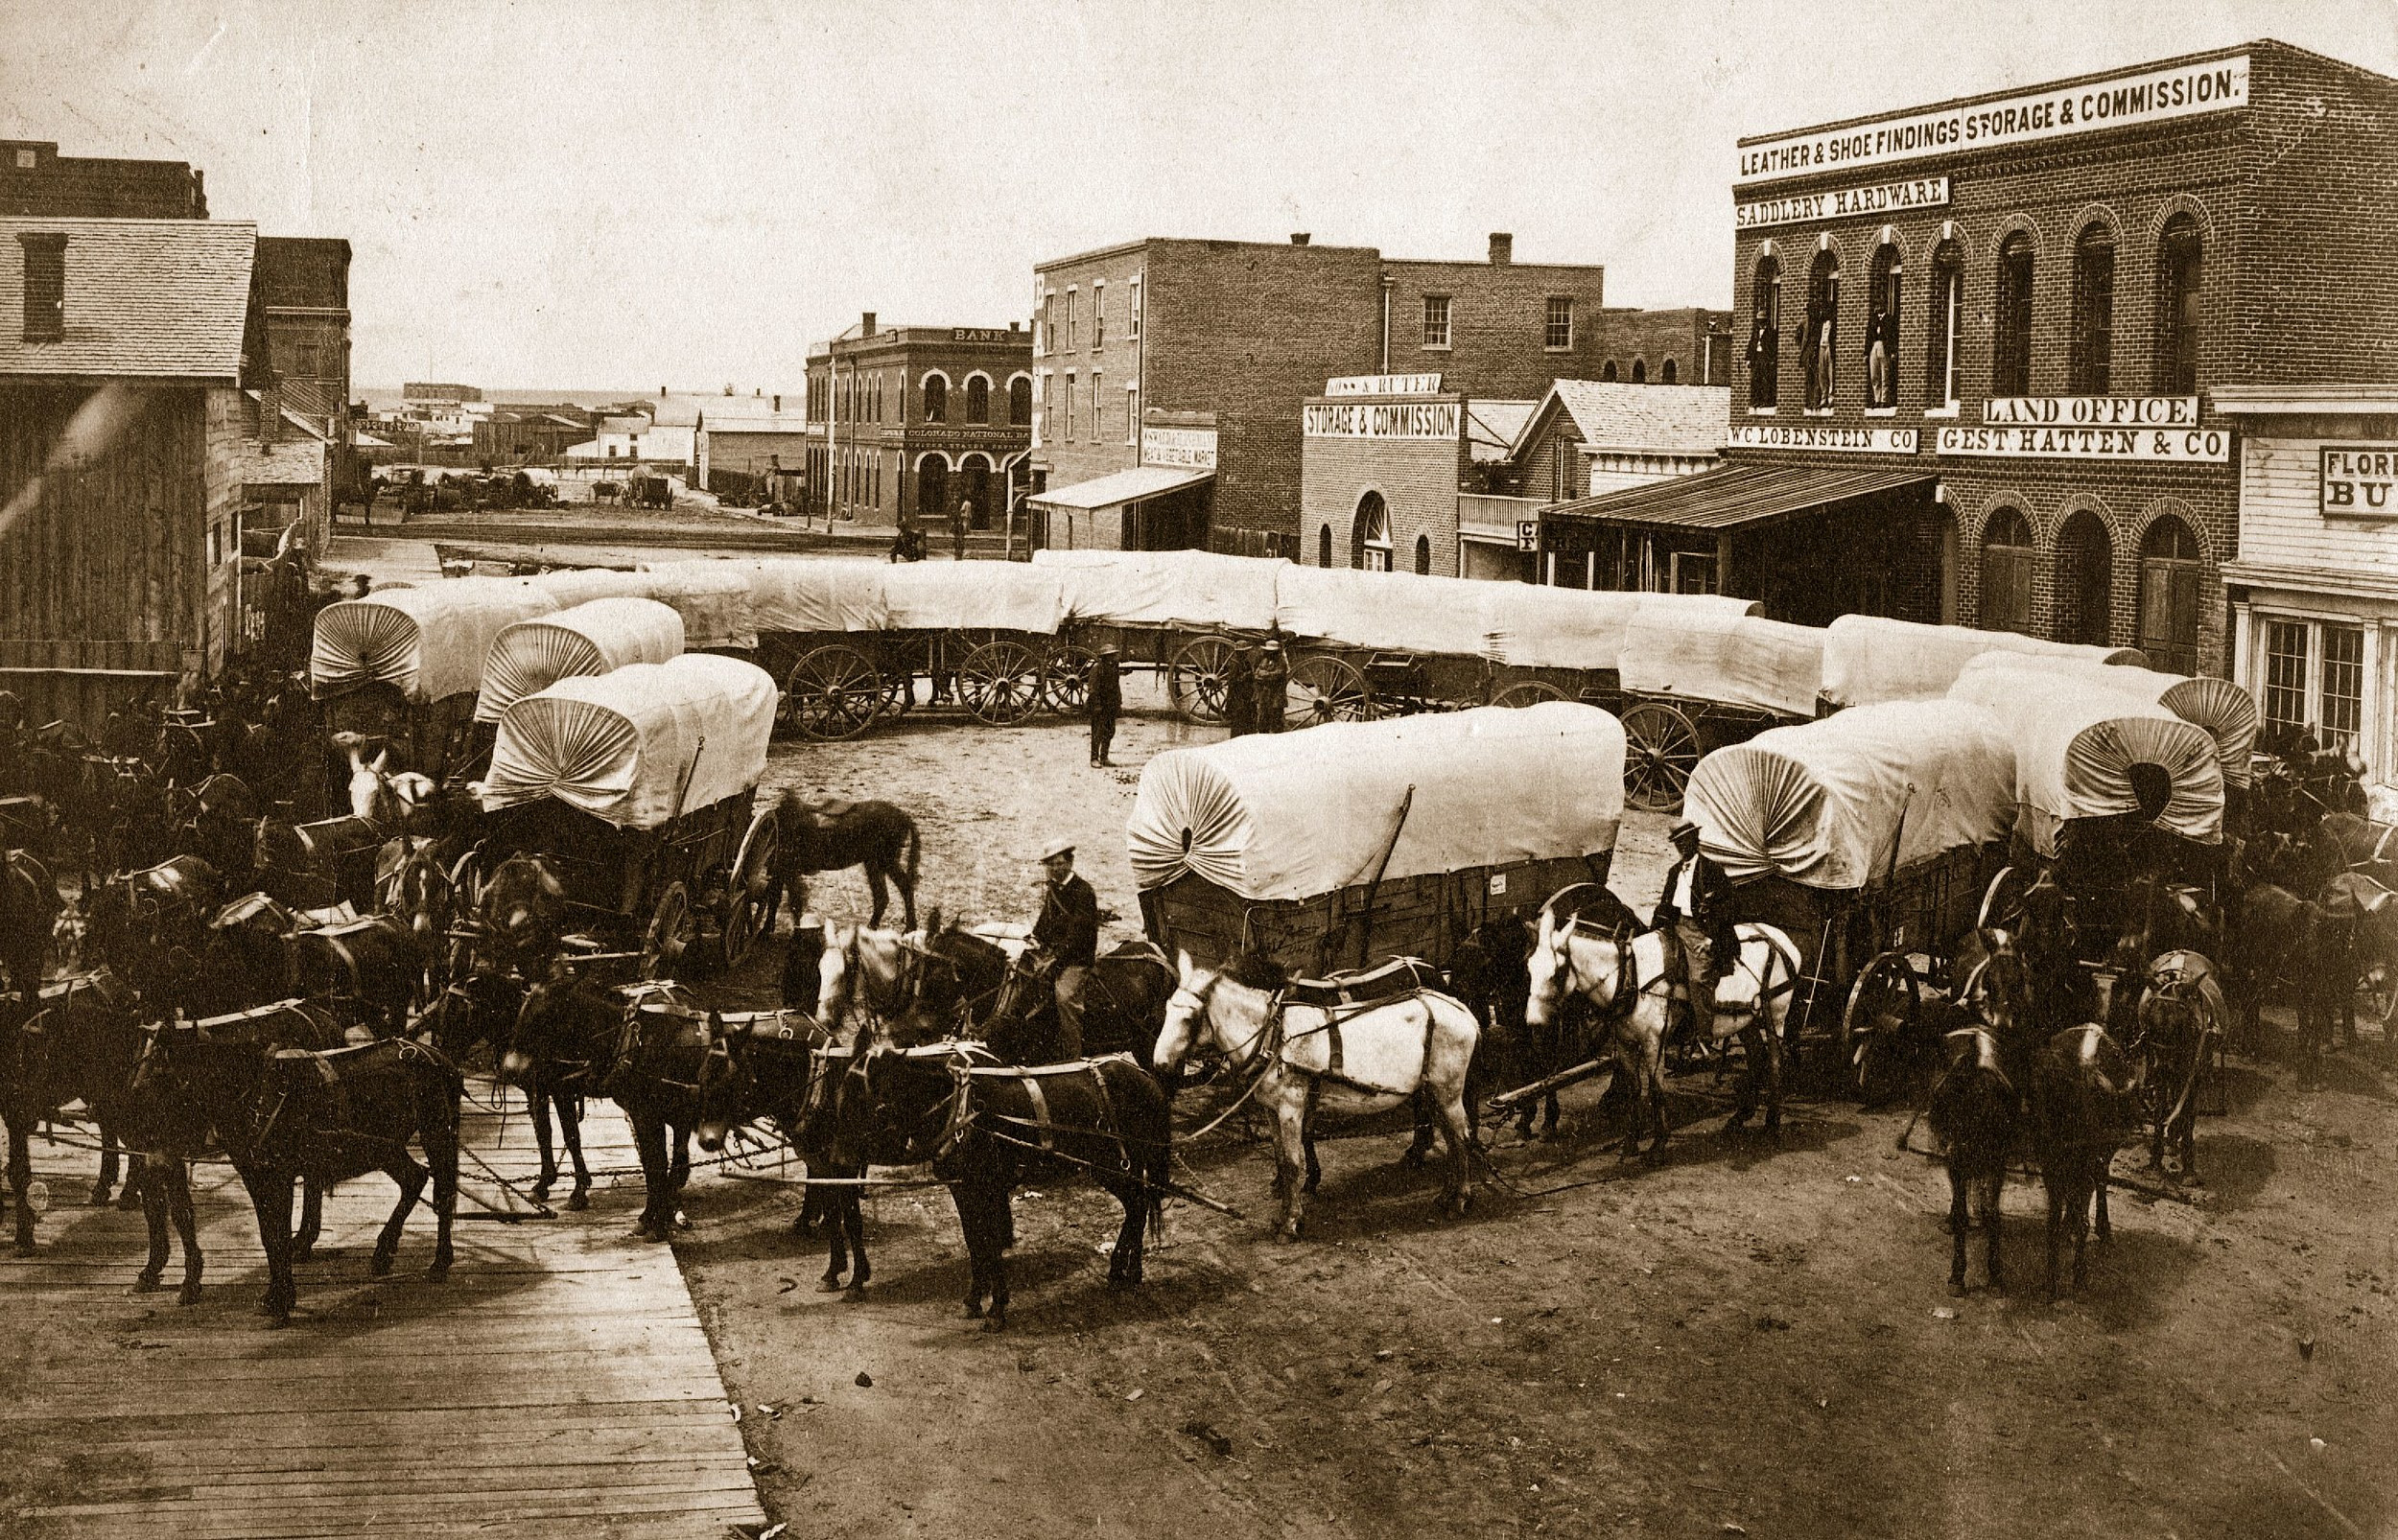 Denver's First Store Opens 156 Years Ago Today - Do You Go to Denver to Shop ?